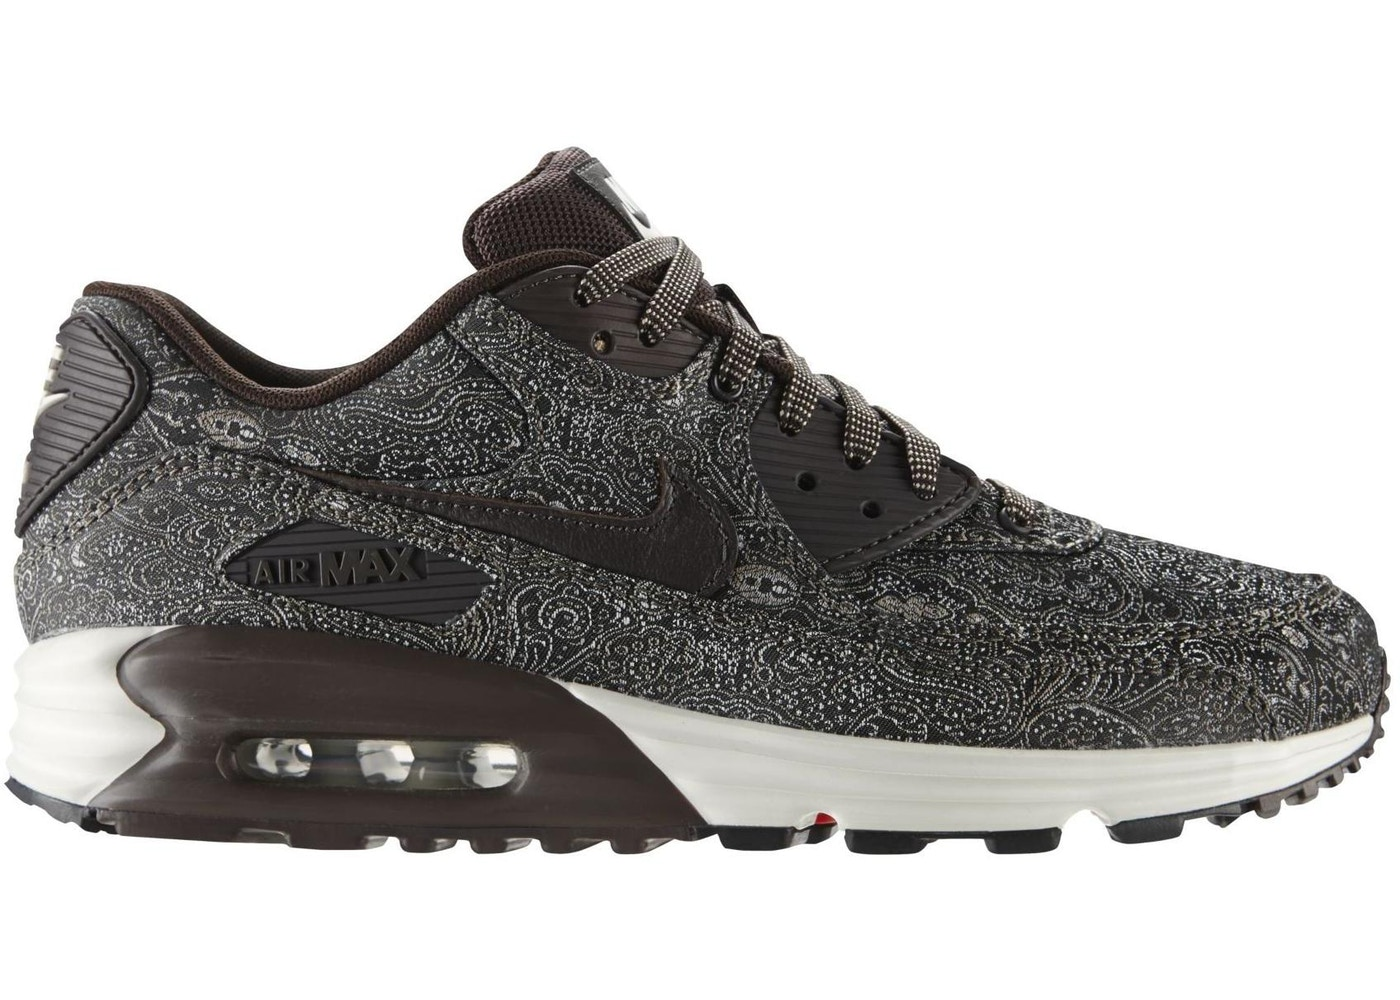 new concept ca485 ee2a6 Air Max Lunar90 Brown-Paisley - 705068-201